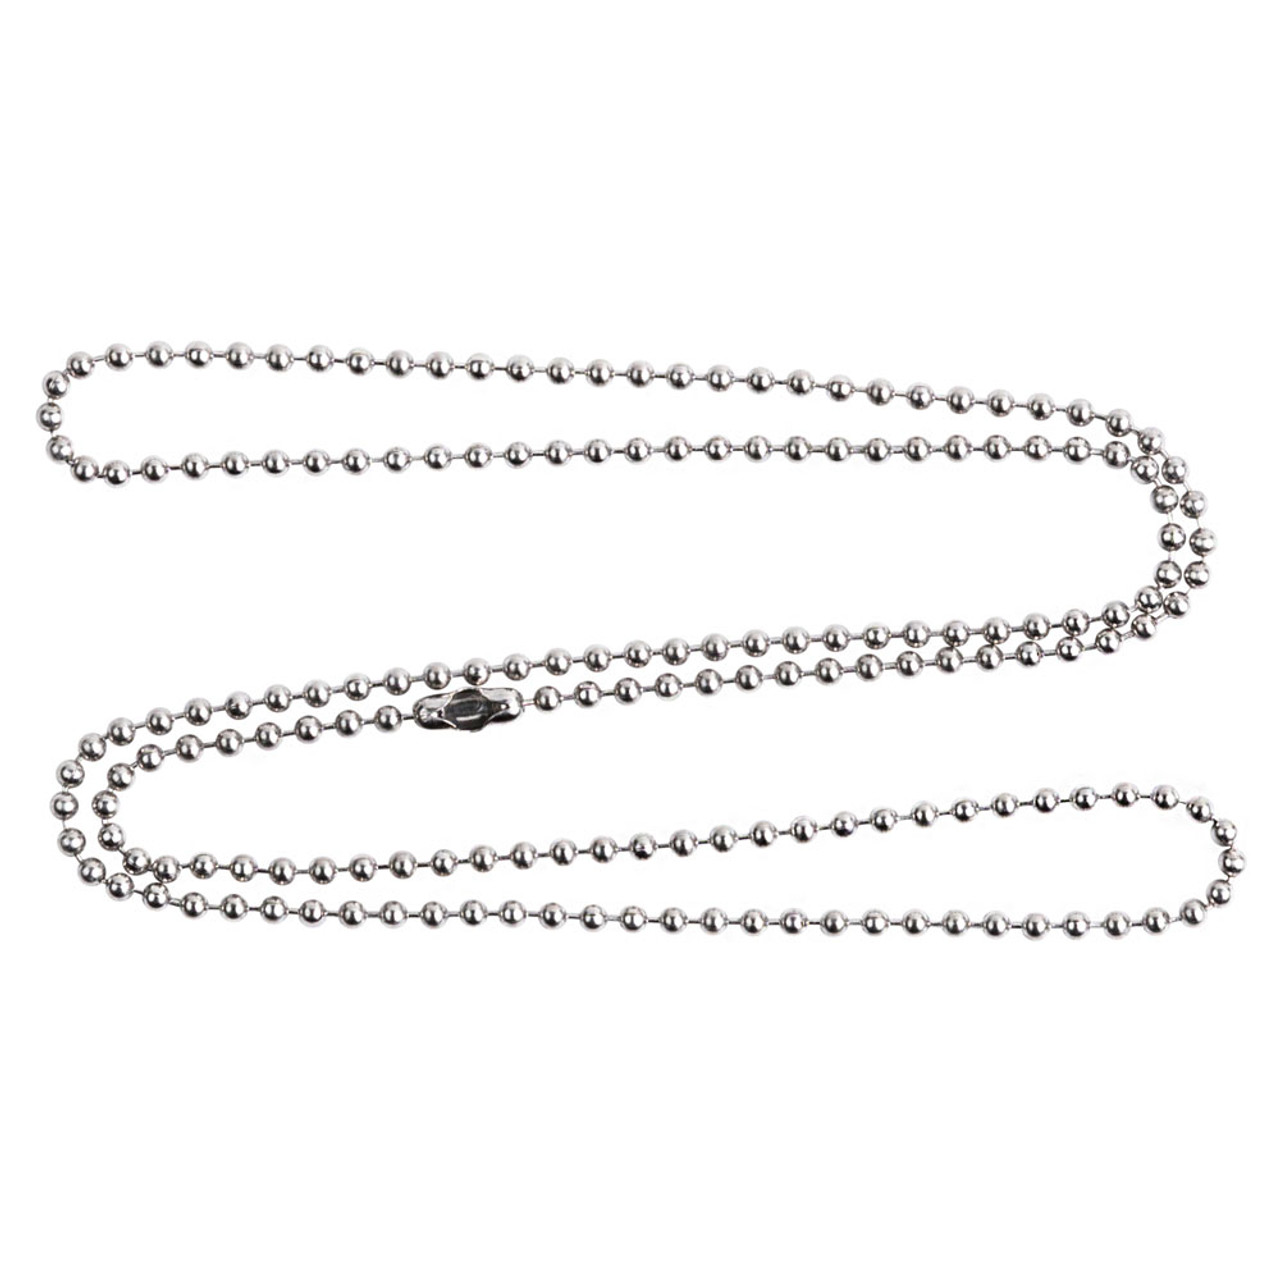 #3 24 inch b all chains with connector in s shape and clasped.